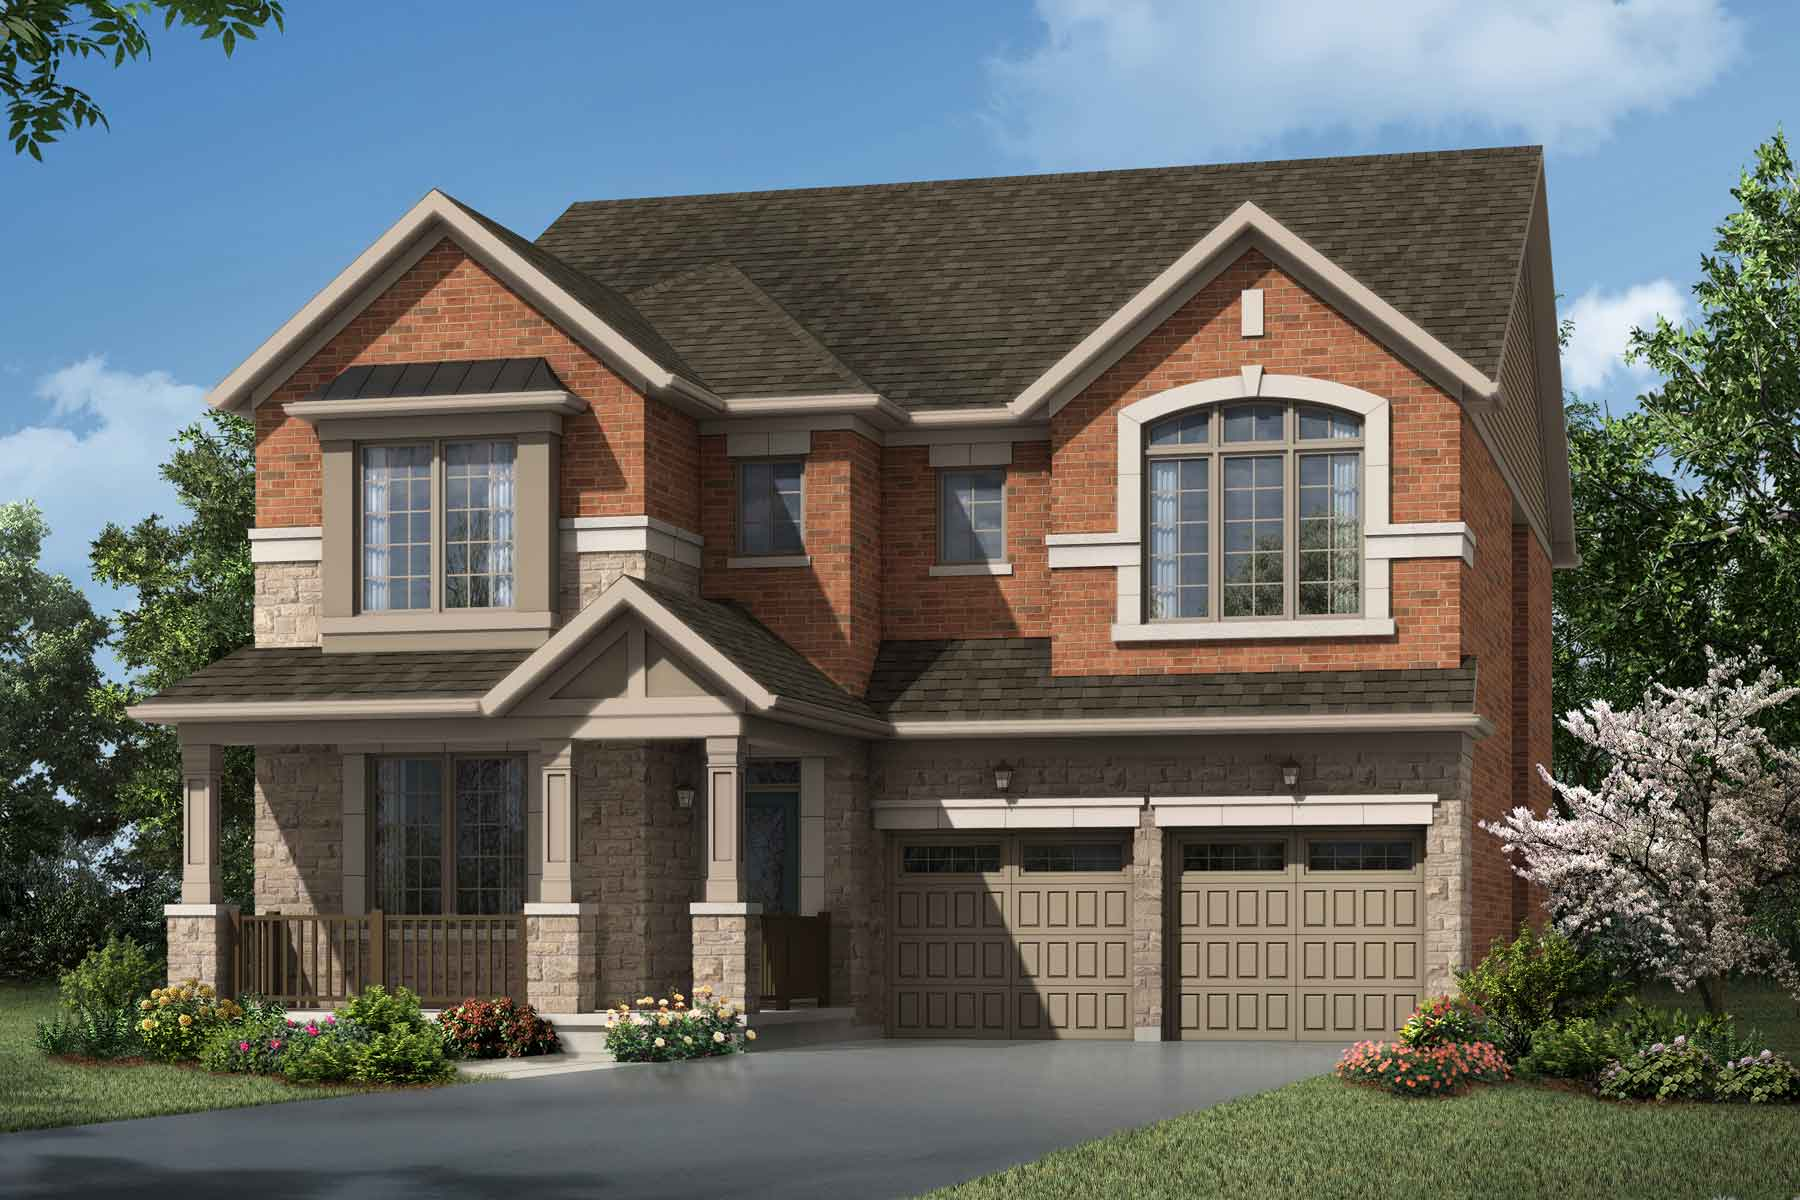 Rosebank Plan Elevation Front at Seaton Whitevale in Pickering Ontario by Mattamy Homes